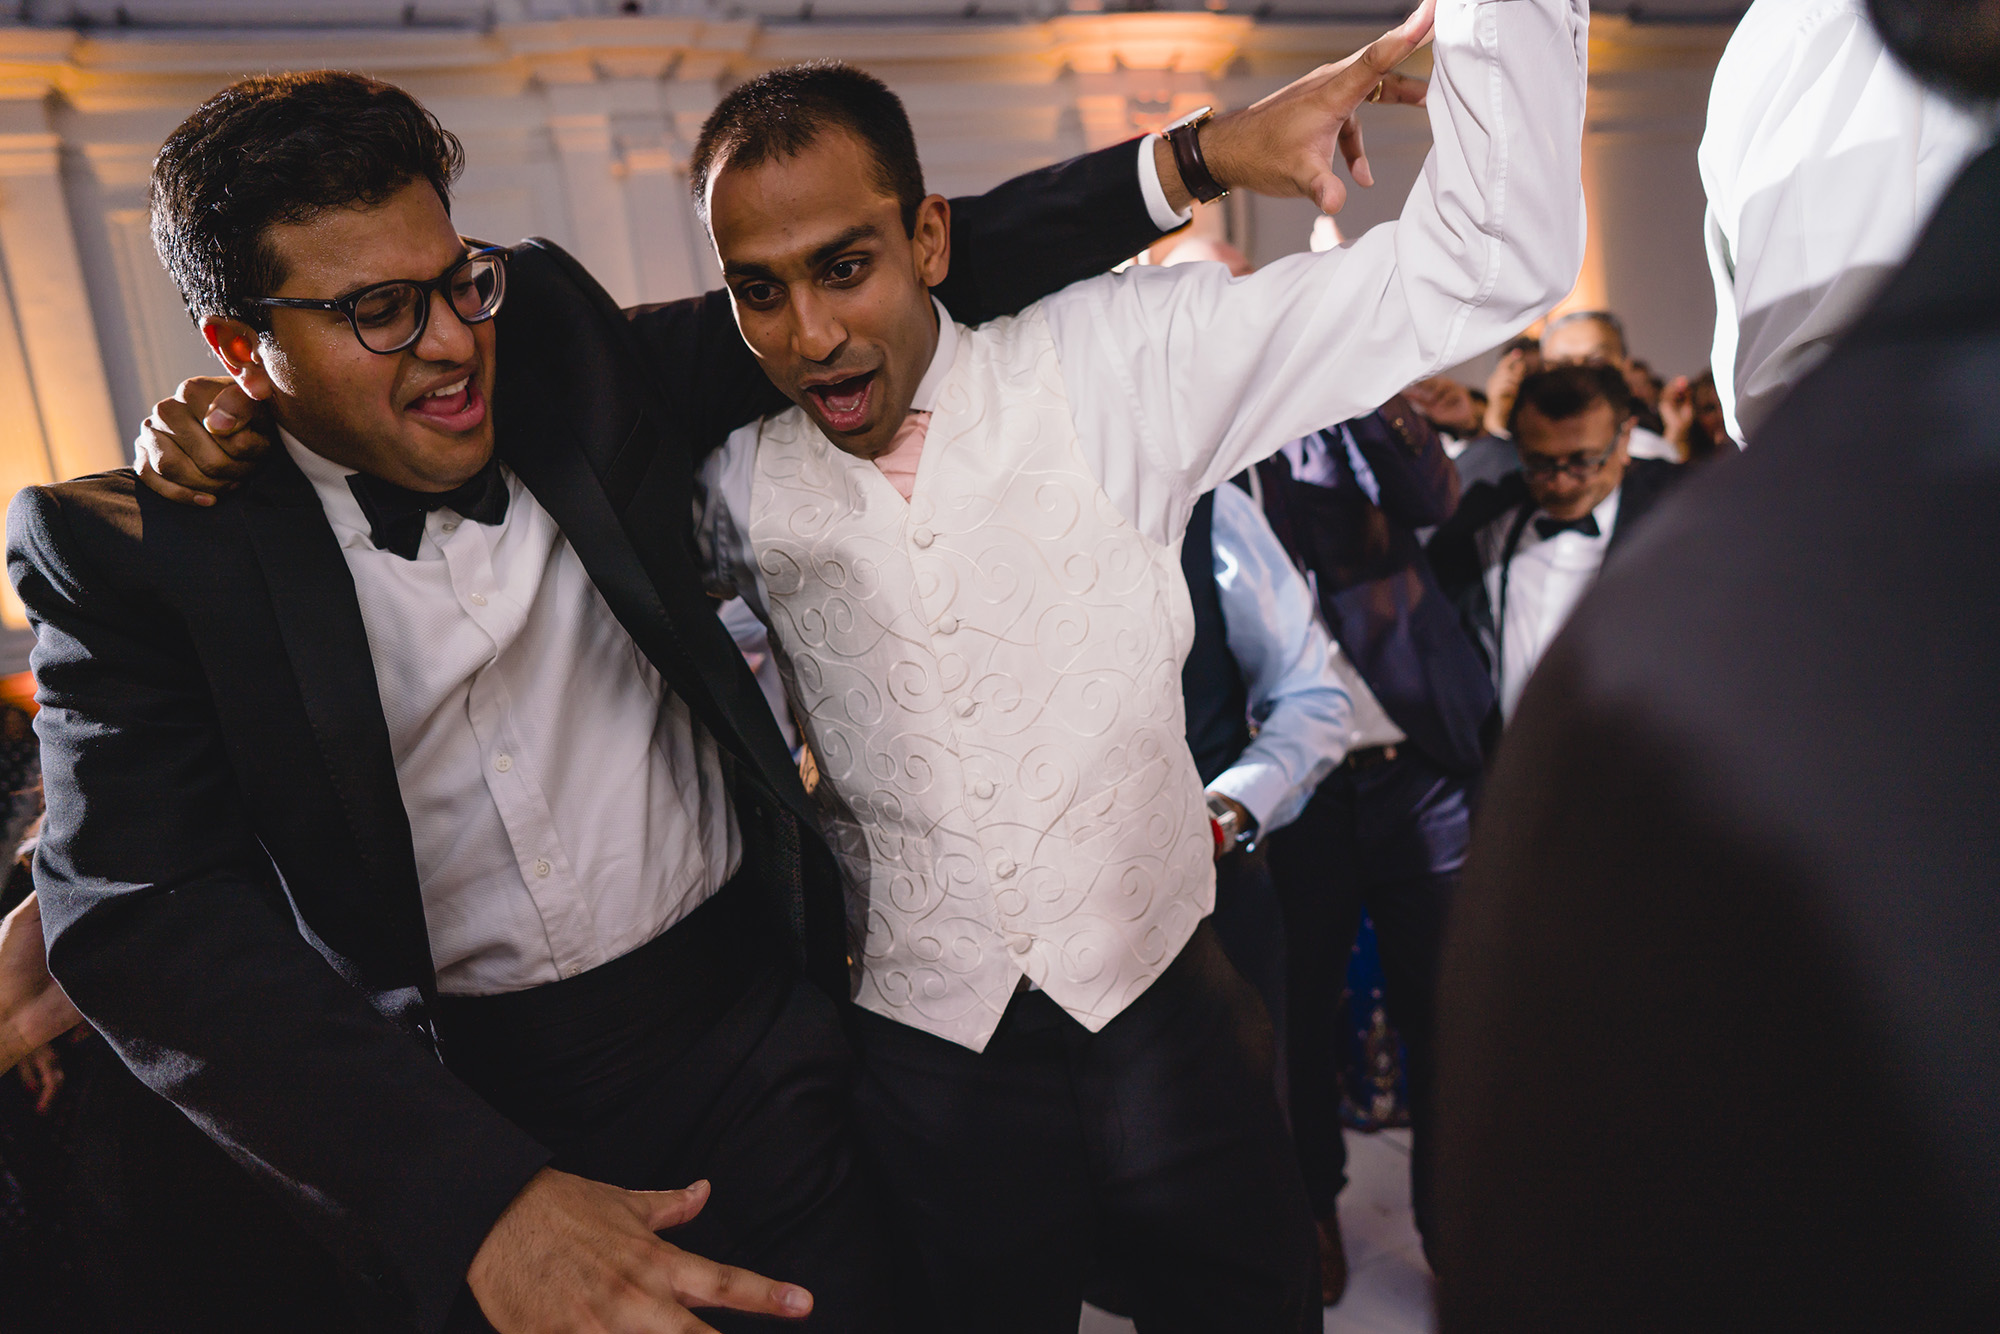 groom and friends dancing at wedding reception